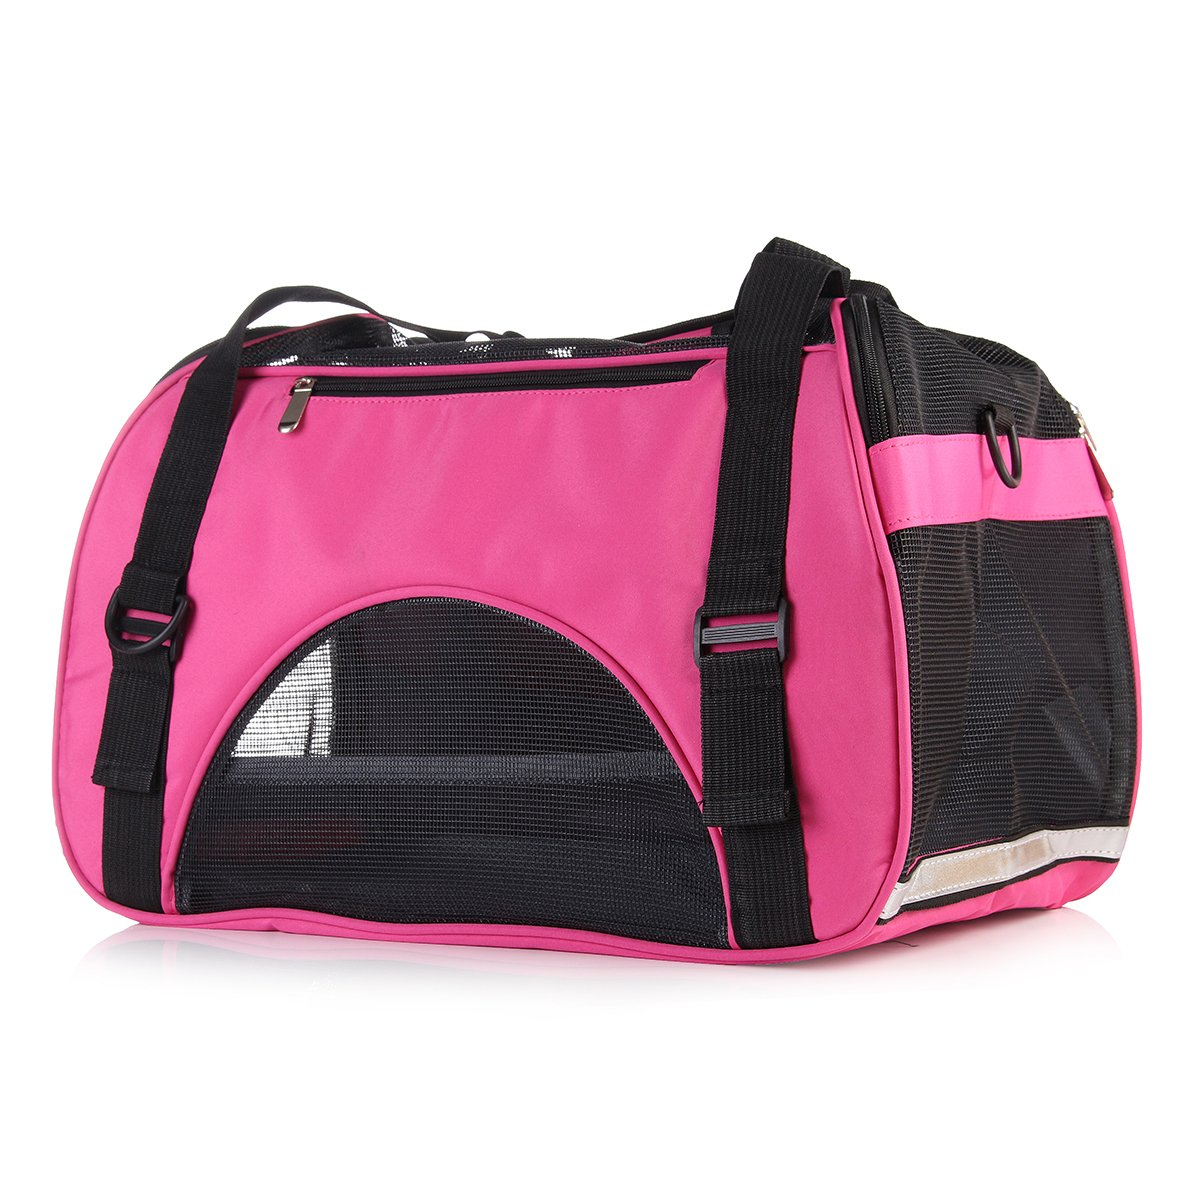 Global Brands Online Pet Carrier Pet Travel Borsa Portatile Borsa Carrier Lato Morbido per Cani e Gatti